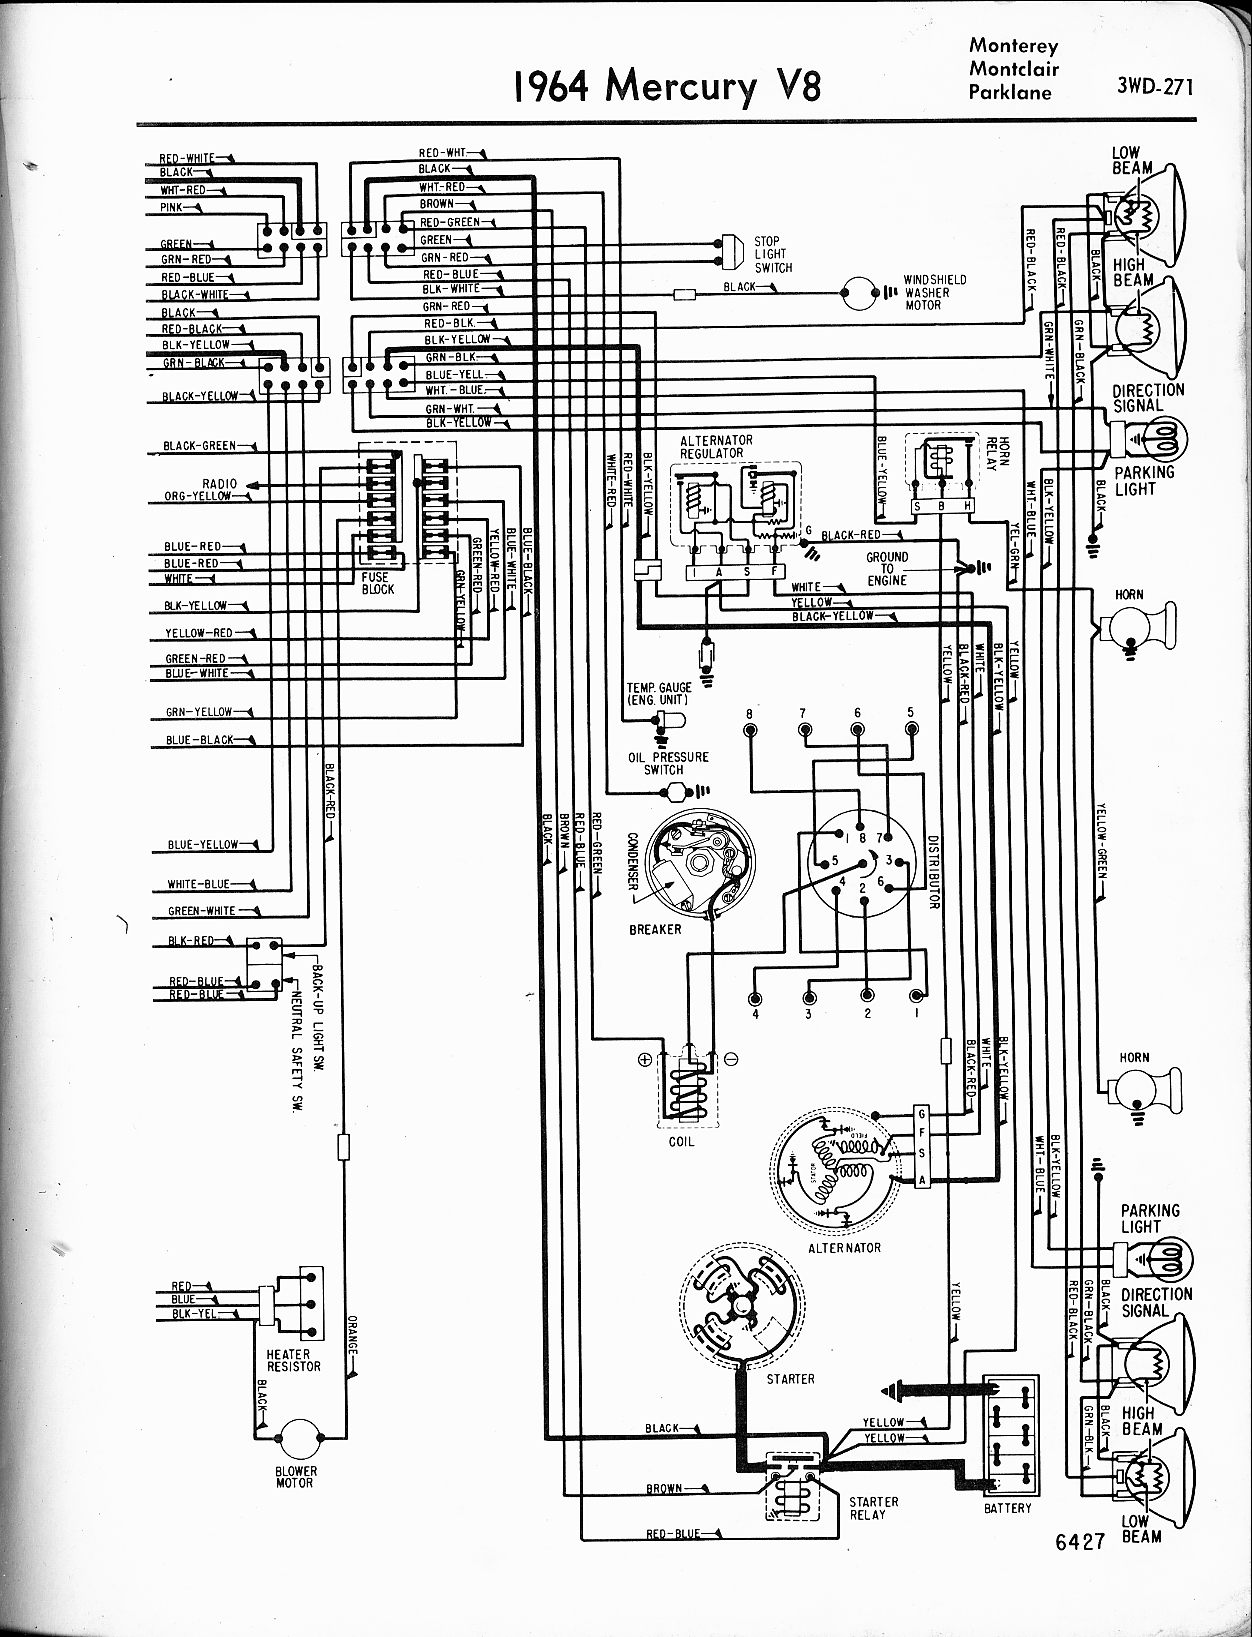 62 Cadillac Wiring Diagram in addition Discussion T42326 ds796902 together with Showthread moreover Flathead drawings trans together with 1966 Mercury Montclair Wiring Diagram. on 1950 ford car heater